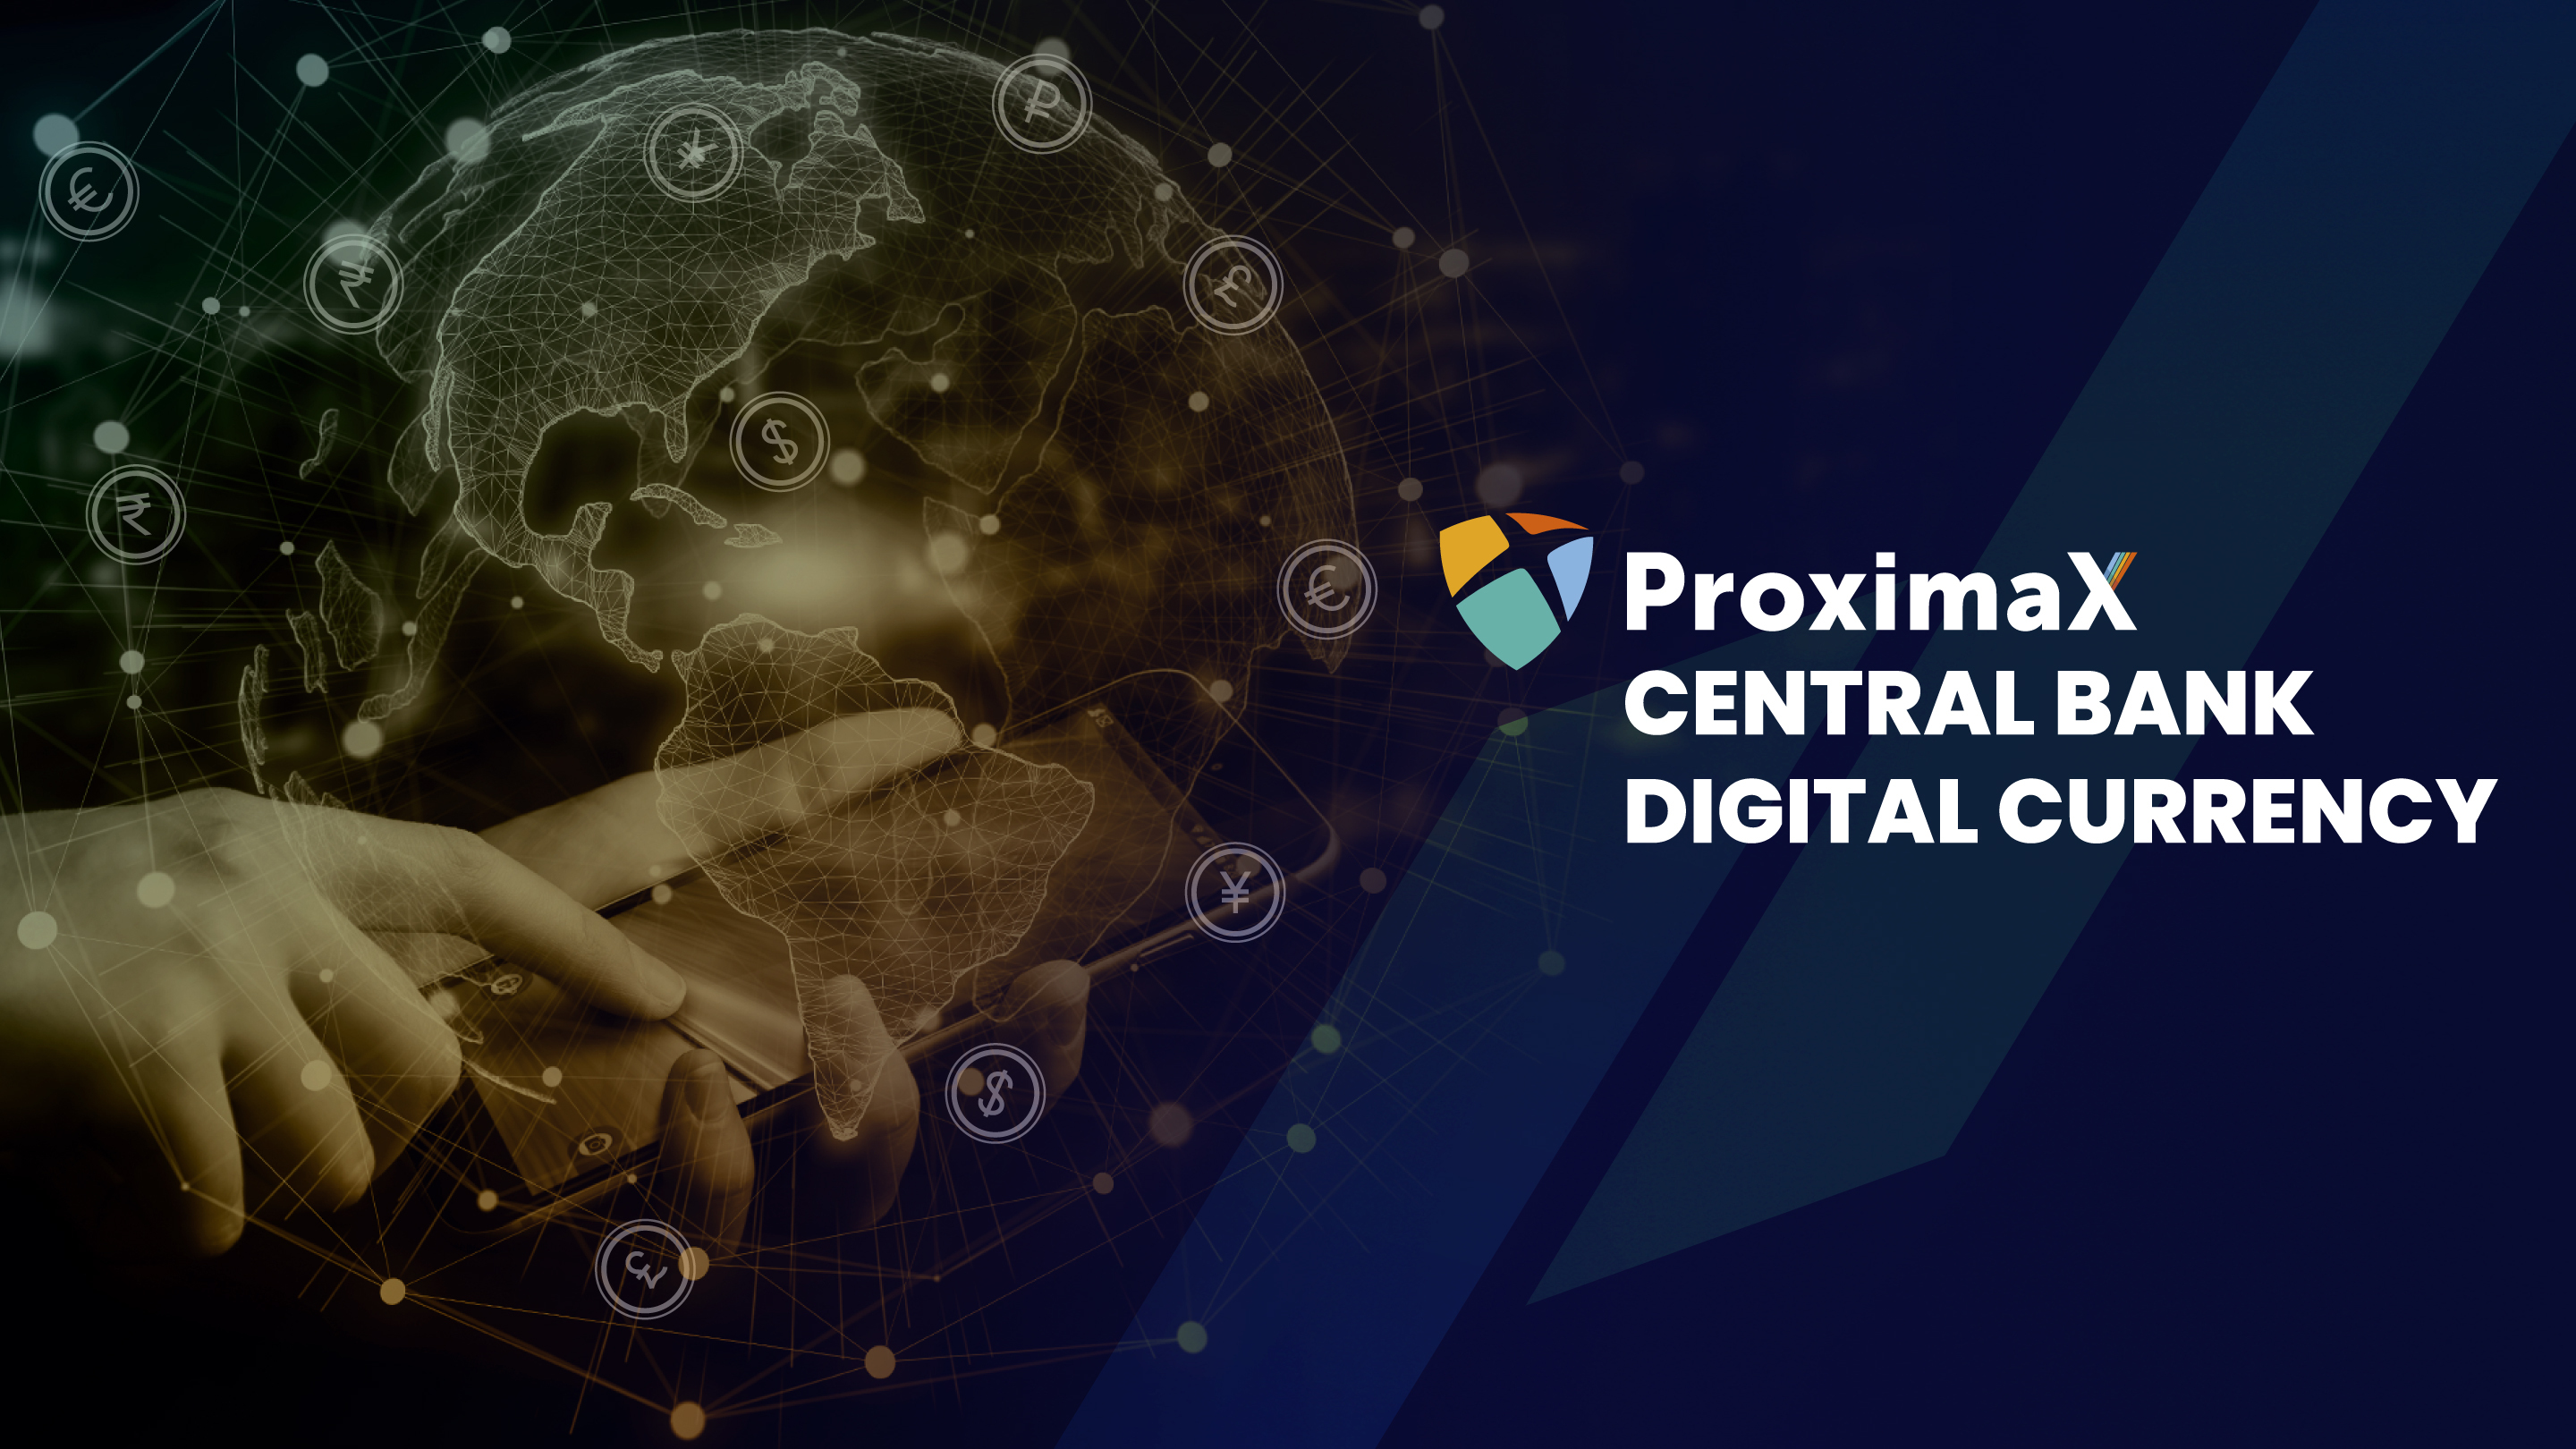 ProximaX Central Bank Digital Currency